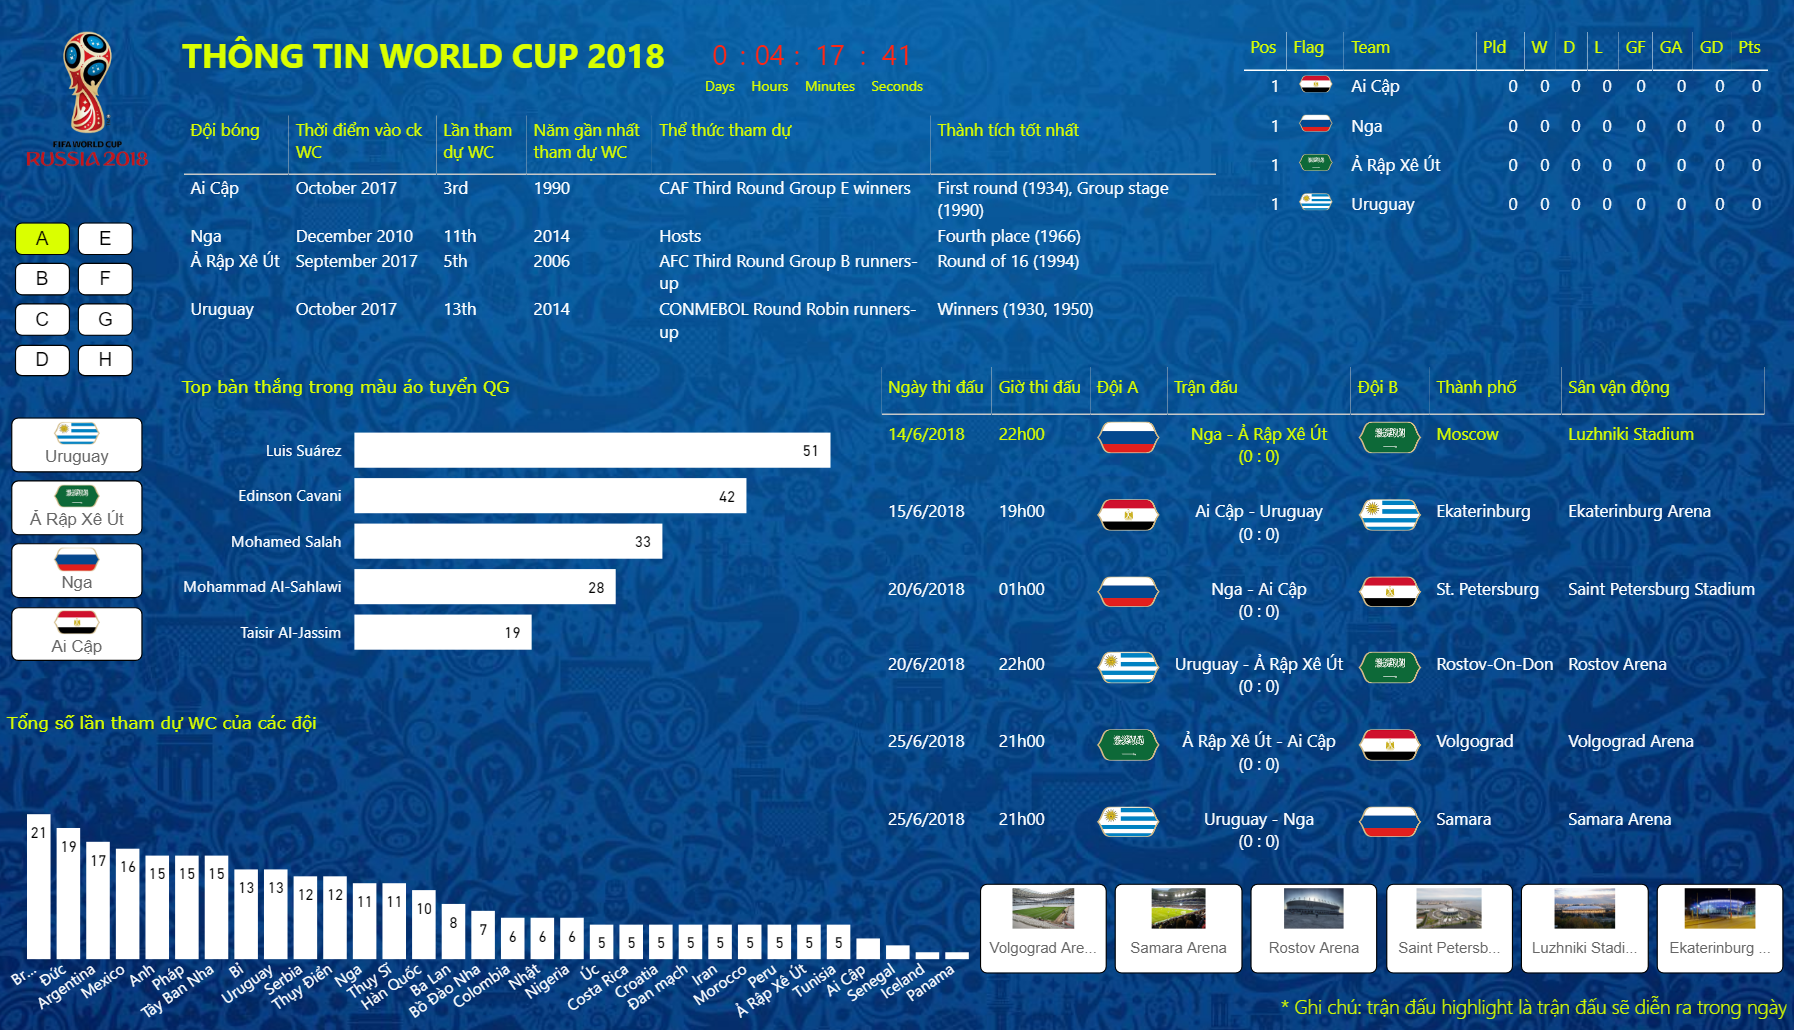 FIFA World Cup 2018 Statistics by Datatyk